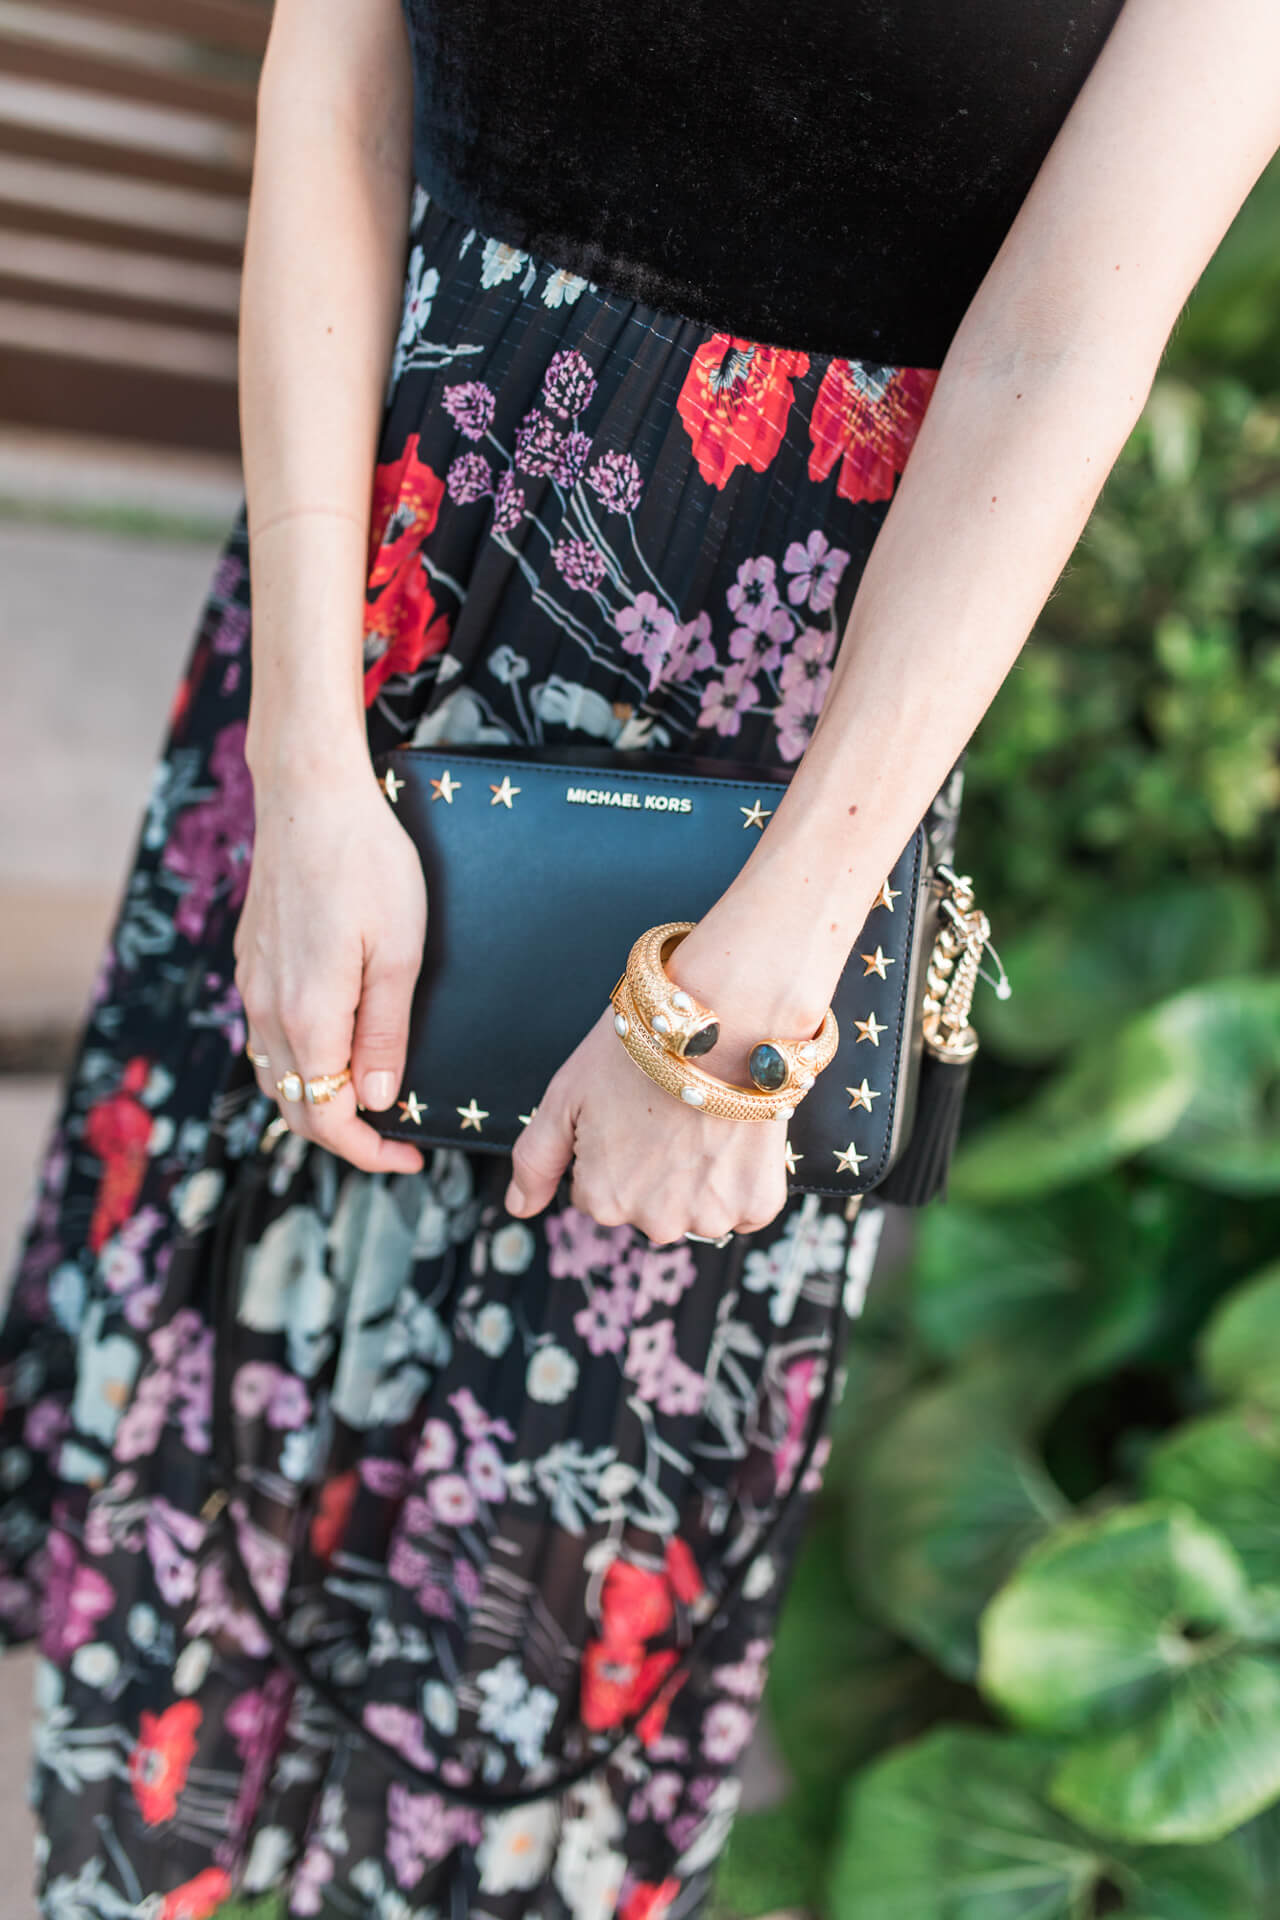 Cute michael kors crossbody with floral skirt